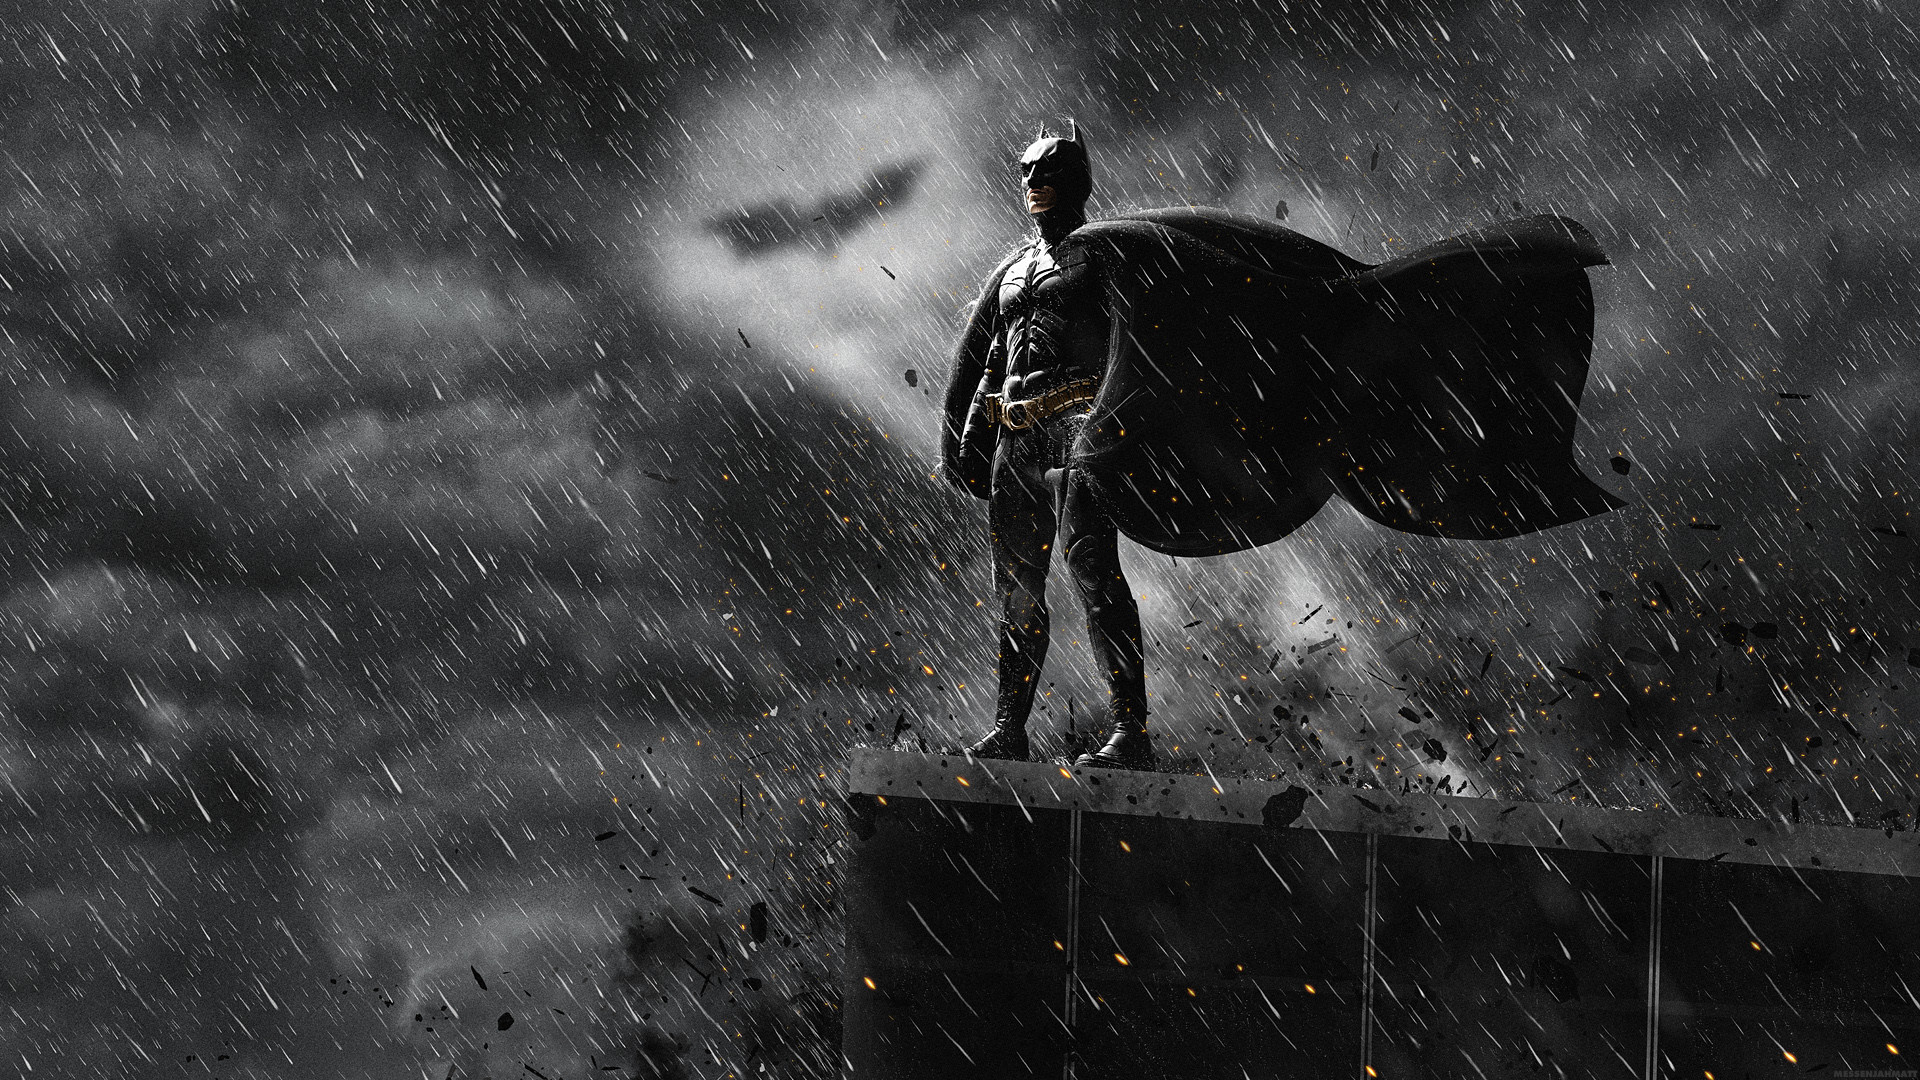 1920x1080 The Dark Knight Rises Wallpaper Set 2 · Sep23. As promised, here's the  second Dark Knight Rises Wallpaper ...